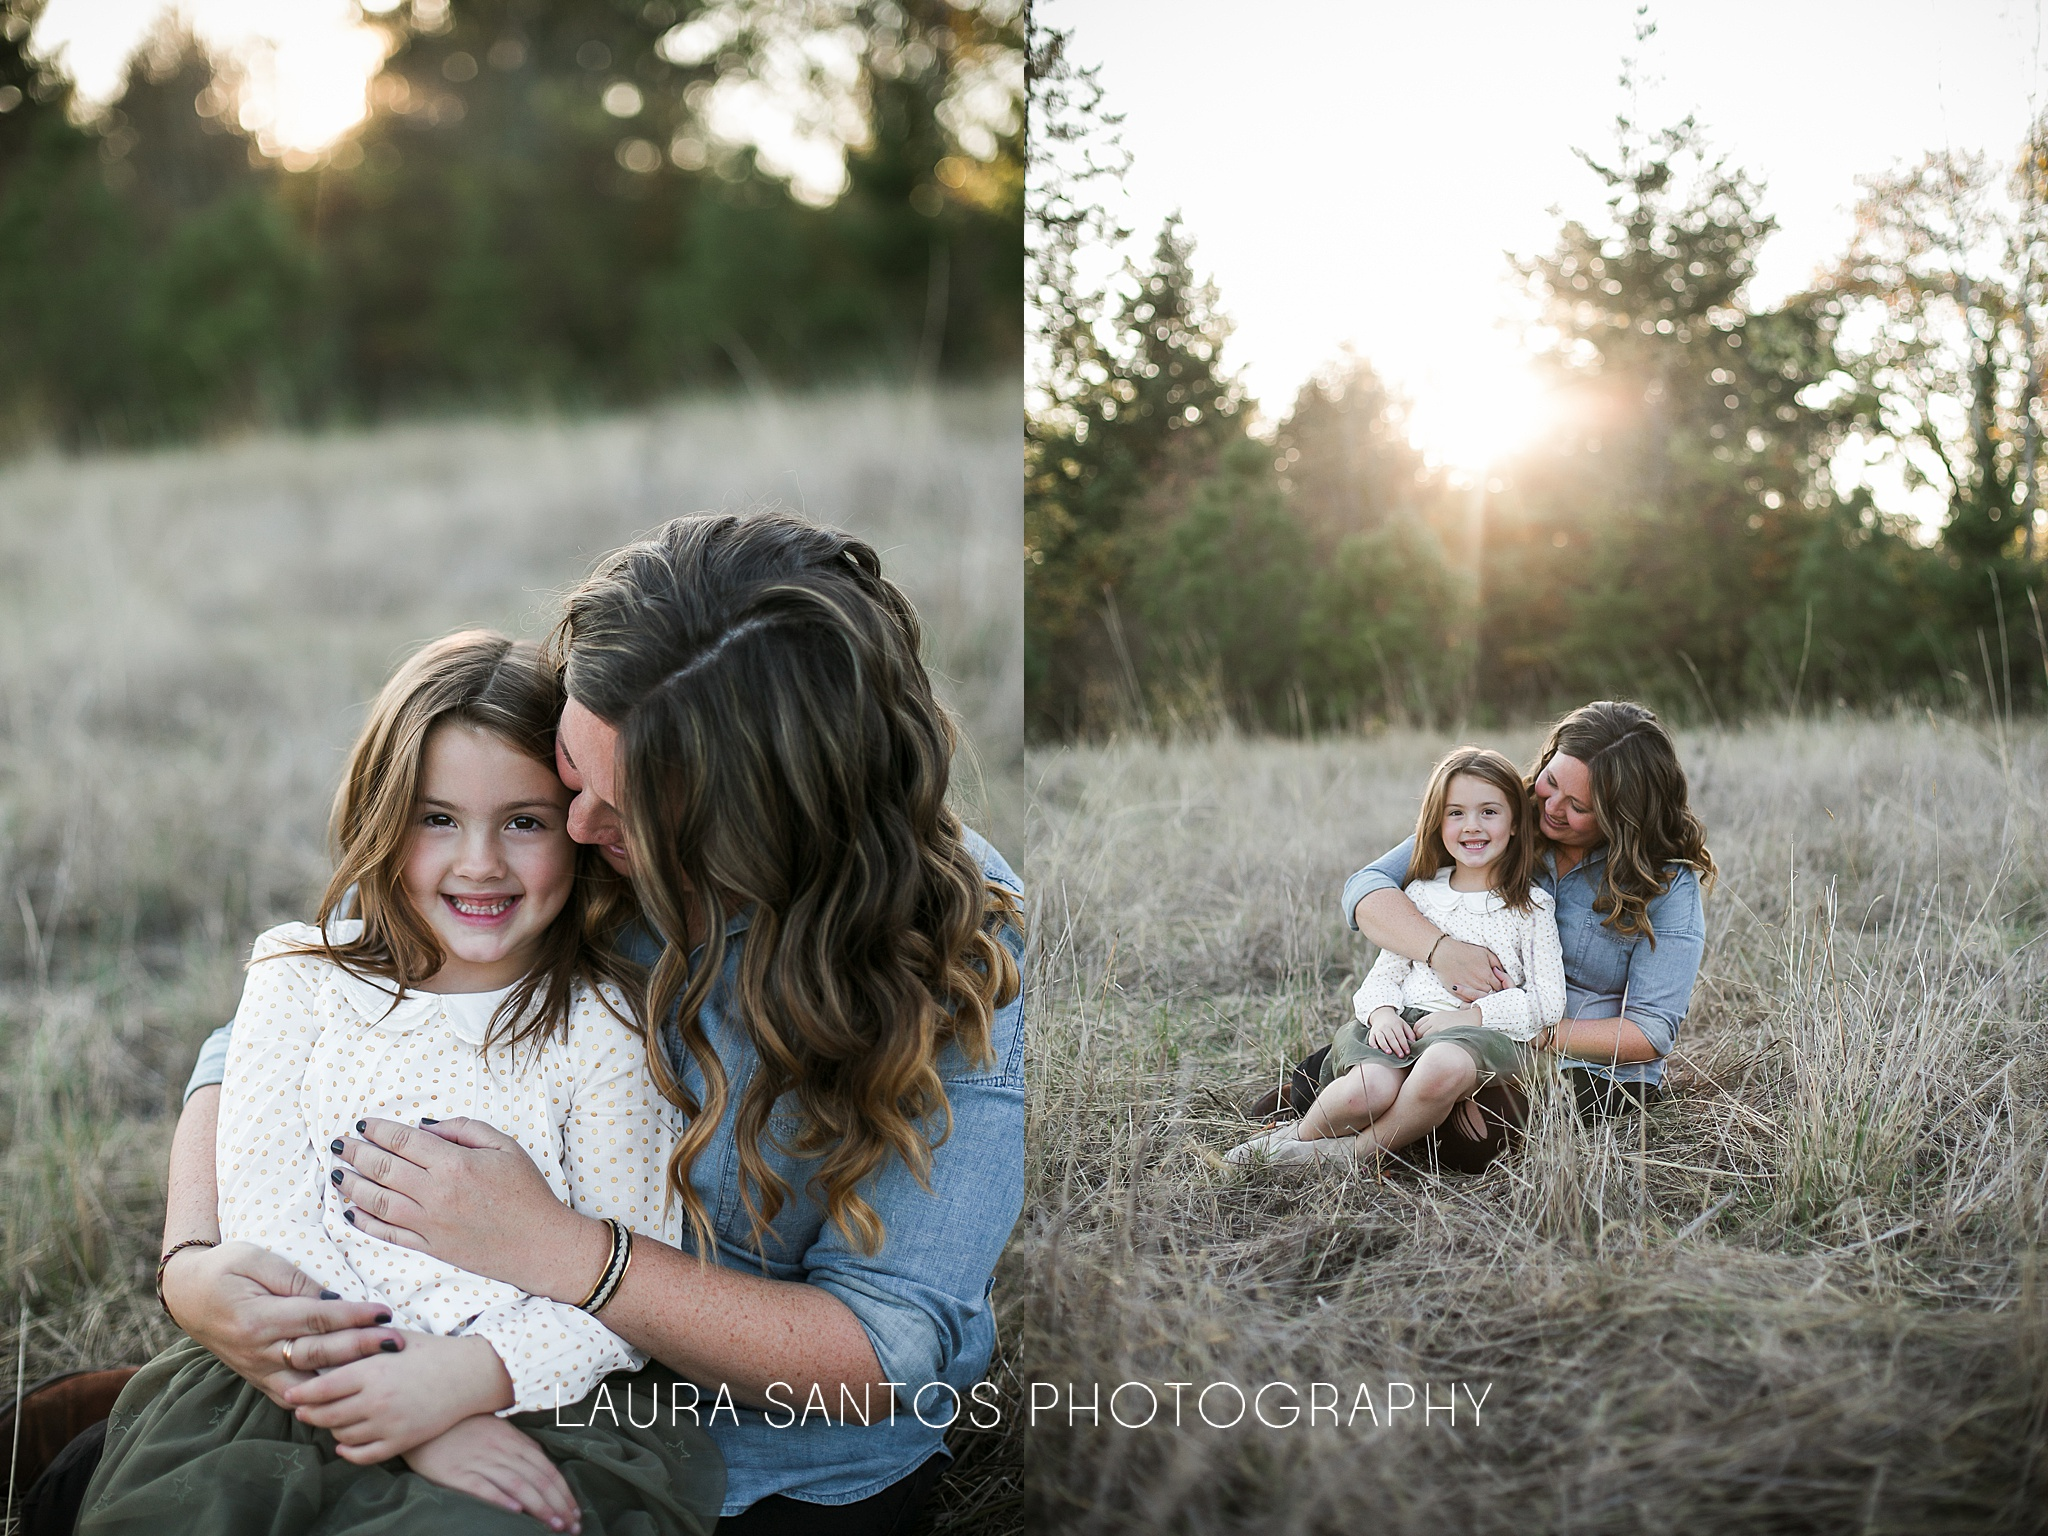 Laura Santos Photography Portland Oregon Family Photographer_0897.jpg